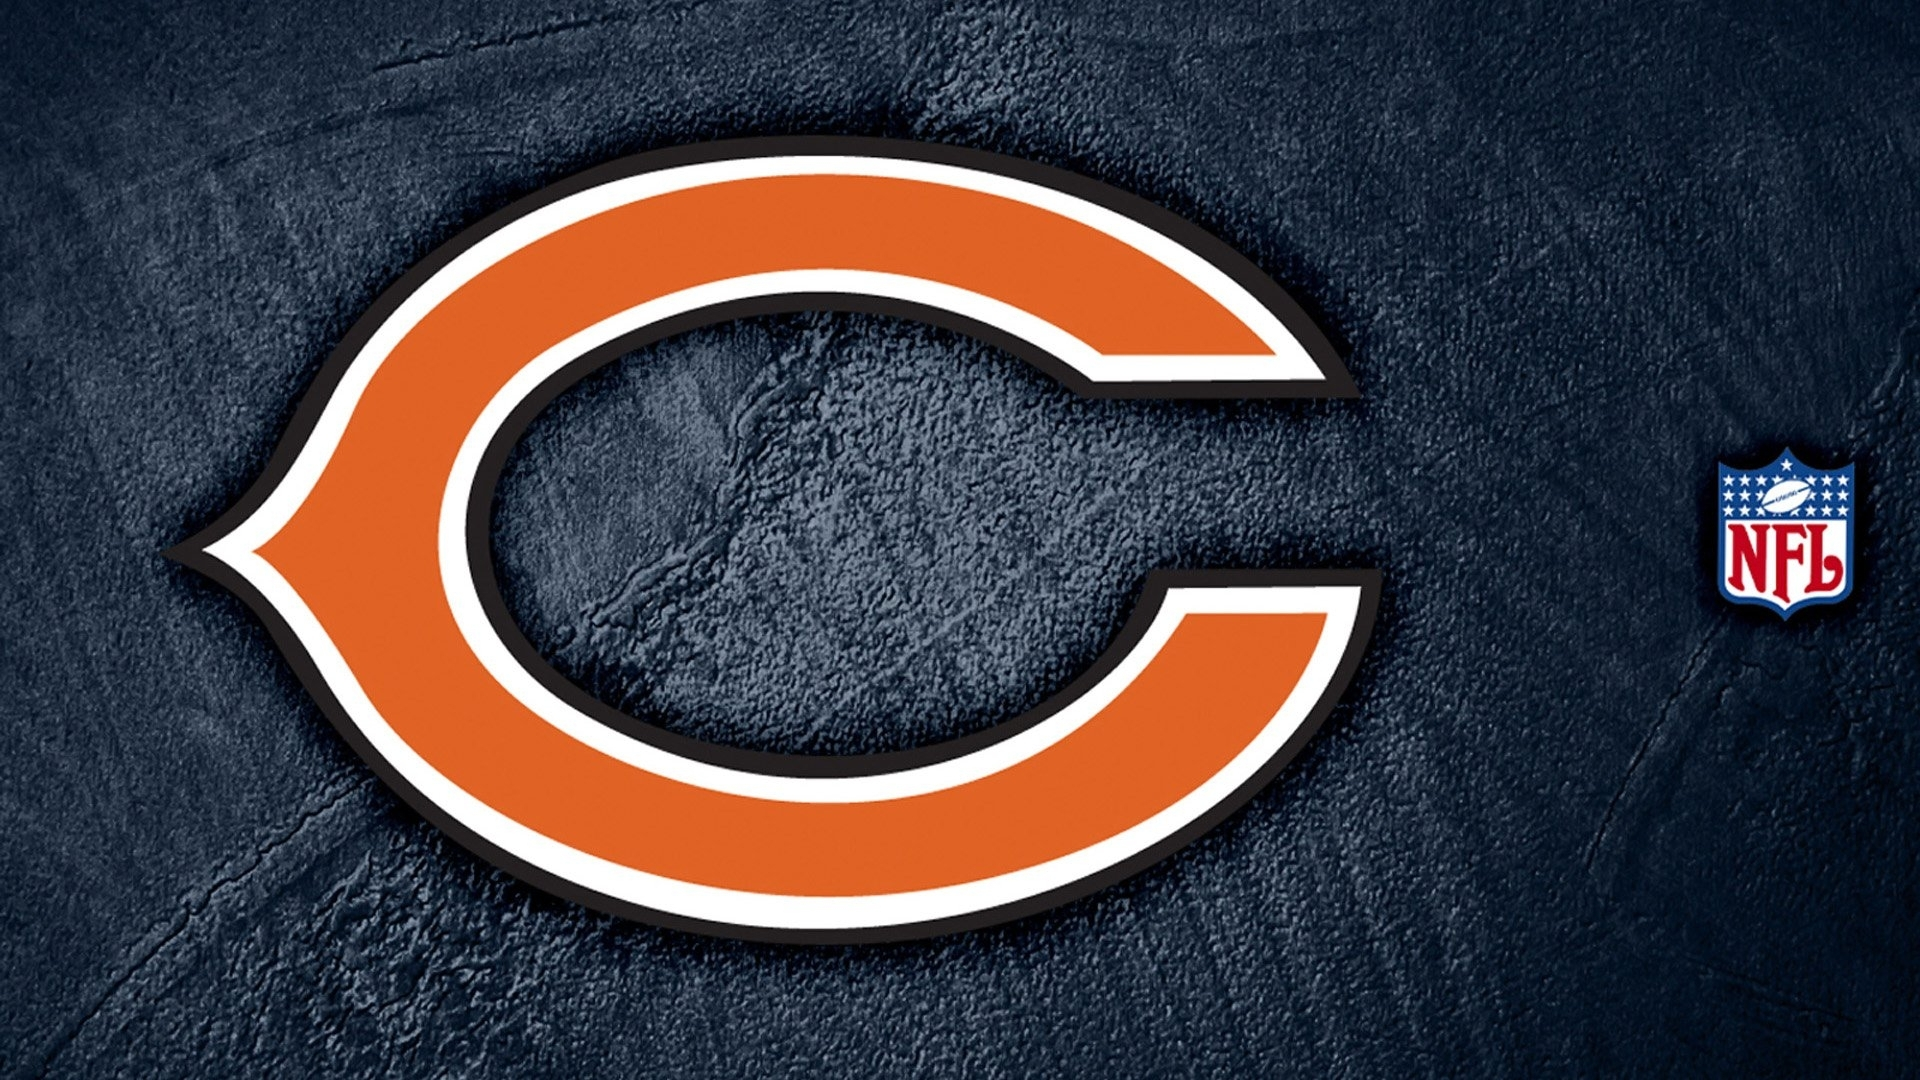 chicago bears full hd wallpaper and background image | 1920x1080